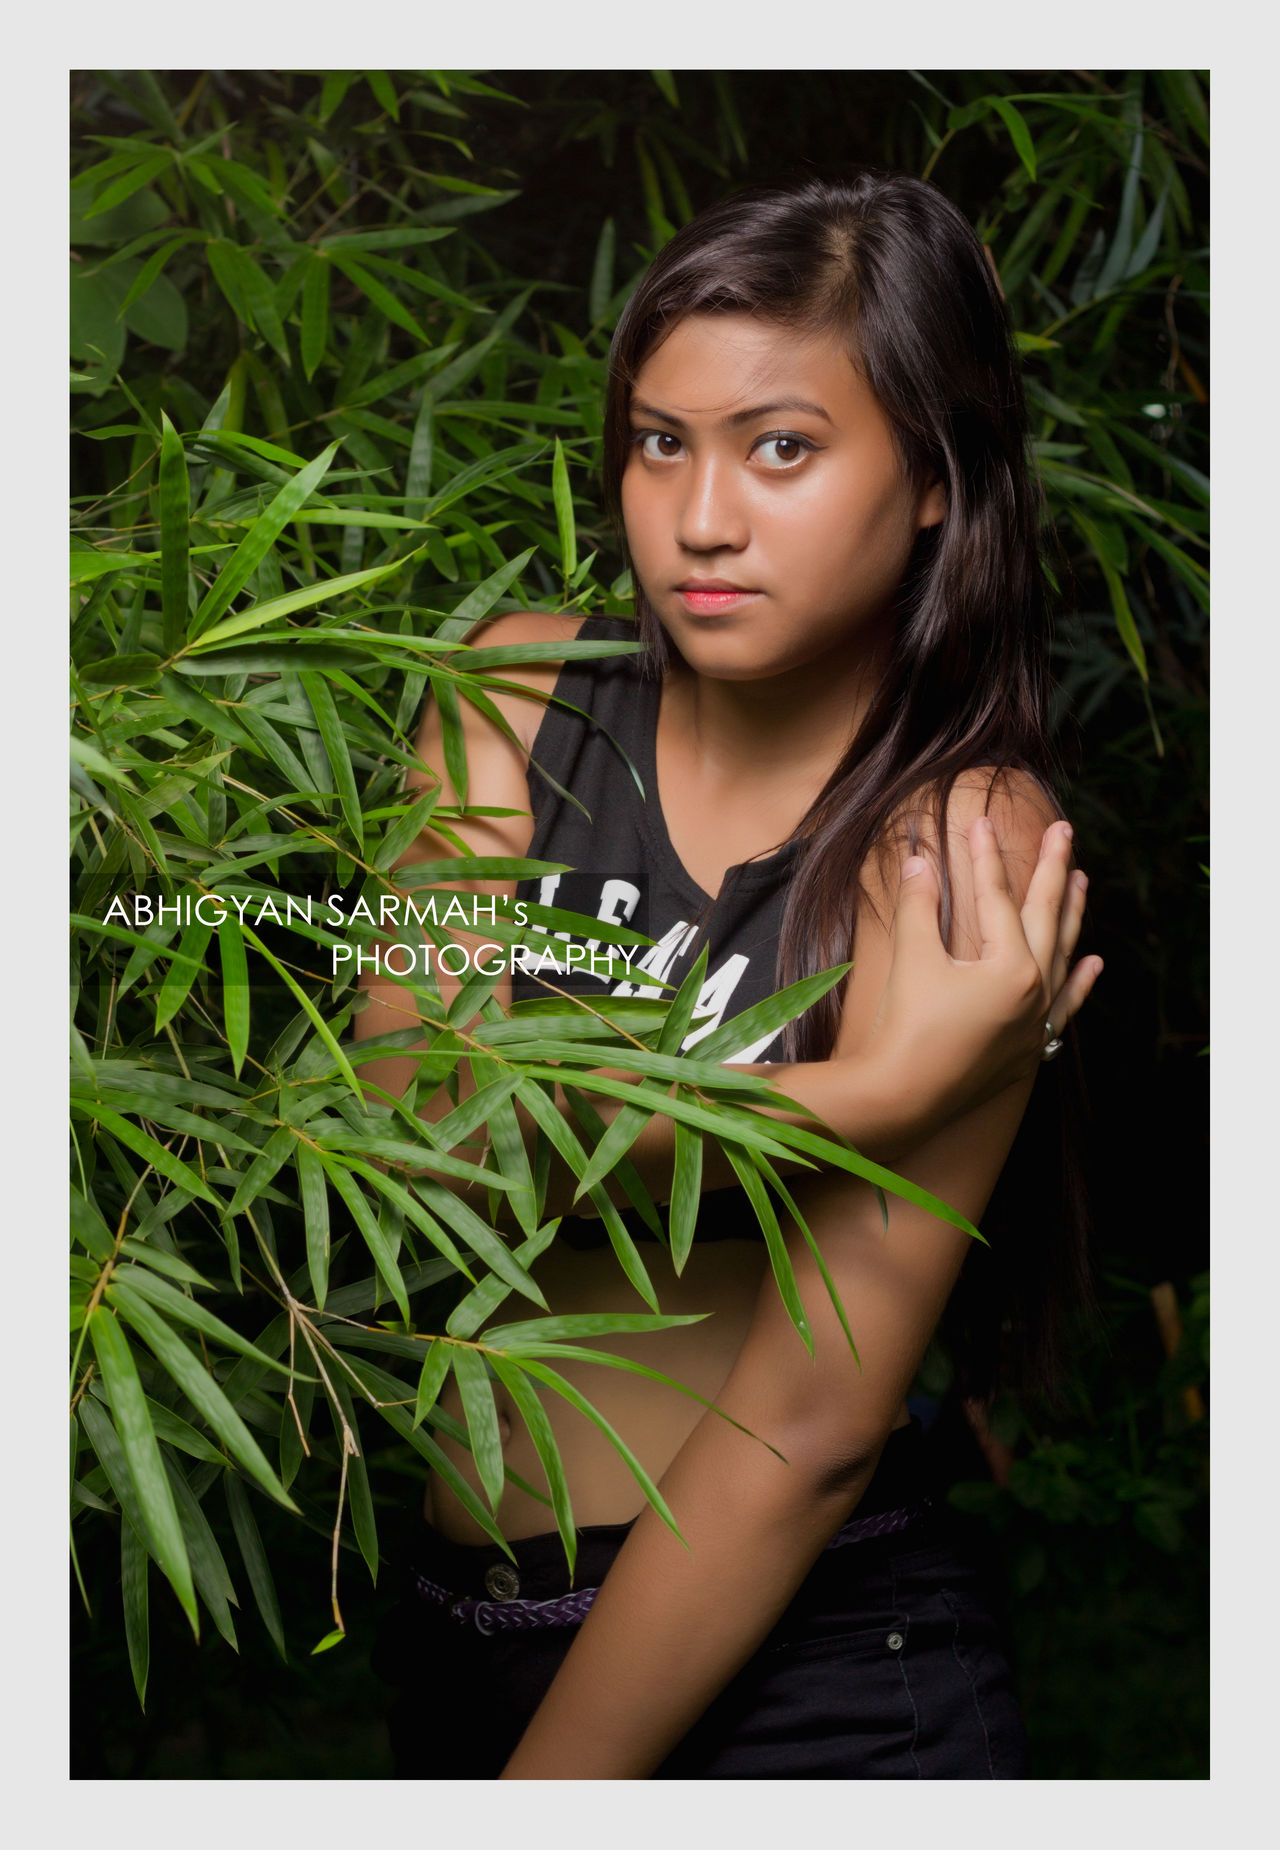 Into the wild Portrait Beauty Young Adult Leaf One Young Woman Only Beautiful Woman Outdoors Only Women Adult Portrait Beauty One Person Young Adult Leaf Young Women Lifestyles One Woman Only Adults Only One Young Woman Only Women Green Color Beautiful Woman Adult Ivy People First Eyeem Photo